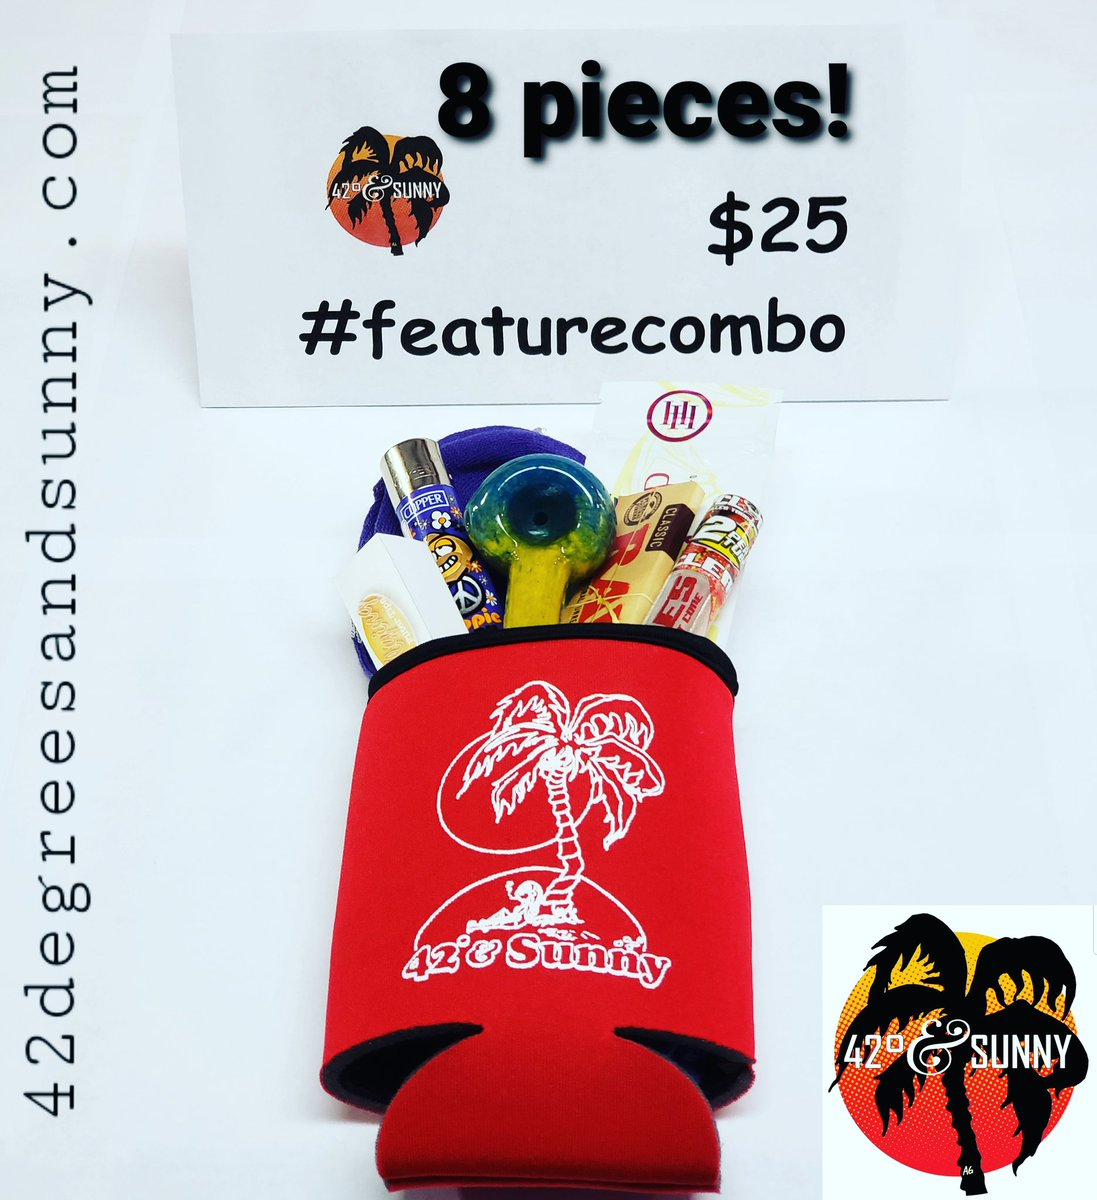 Mid-week #featurecombo in a #koozie! 8 pieces for $25! #spoonpipe #filtertips #clipperlighter #leafsocks #clearcones #highhempwraps #rawrollingpapers #smokingdeals on #smokingaccessories #420friendly #headshop #420family #420andsunny #42degreesandsunny https://t.co/gx9hEVQ2tF